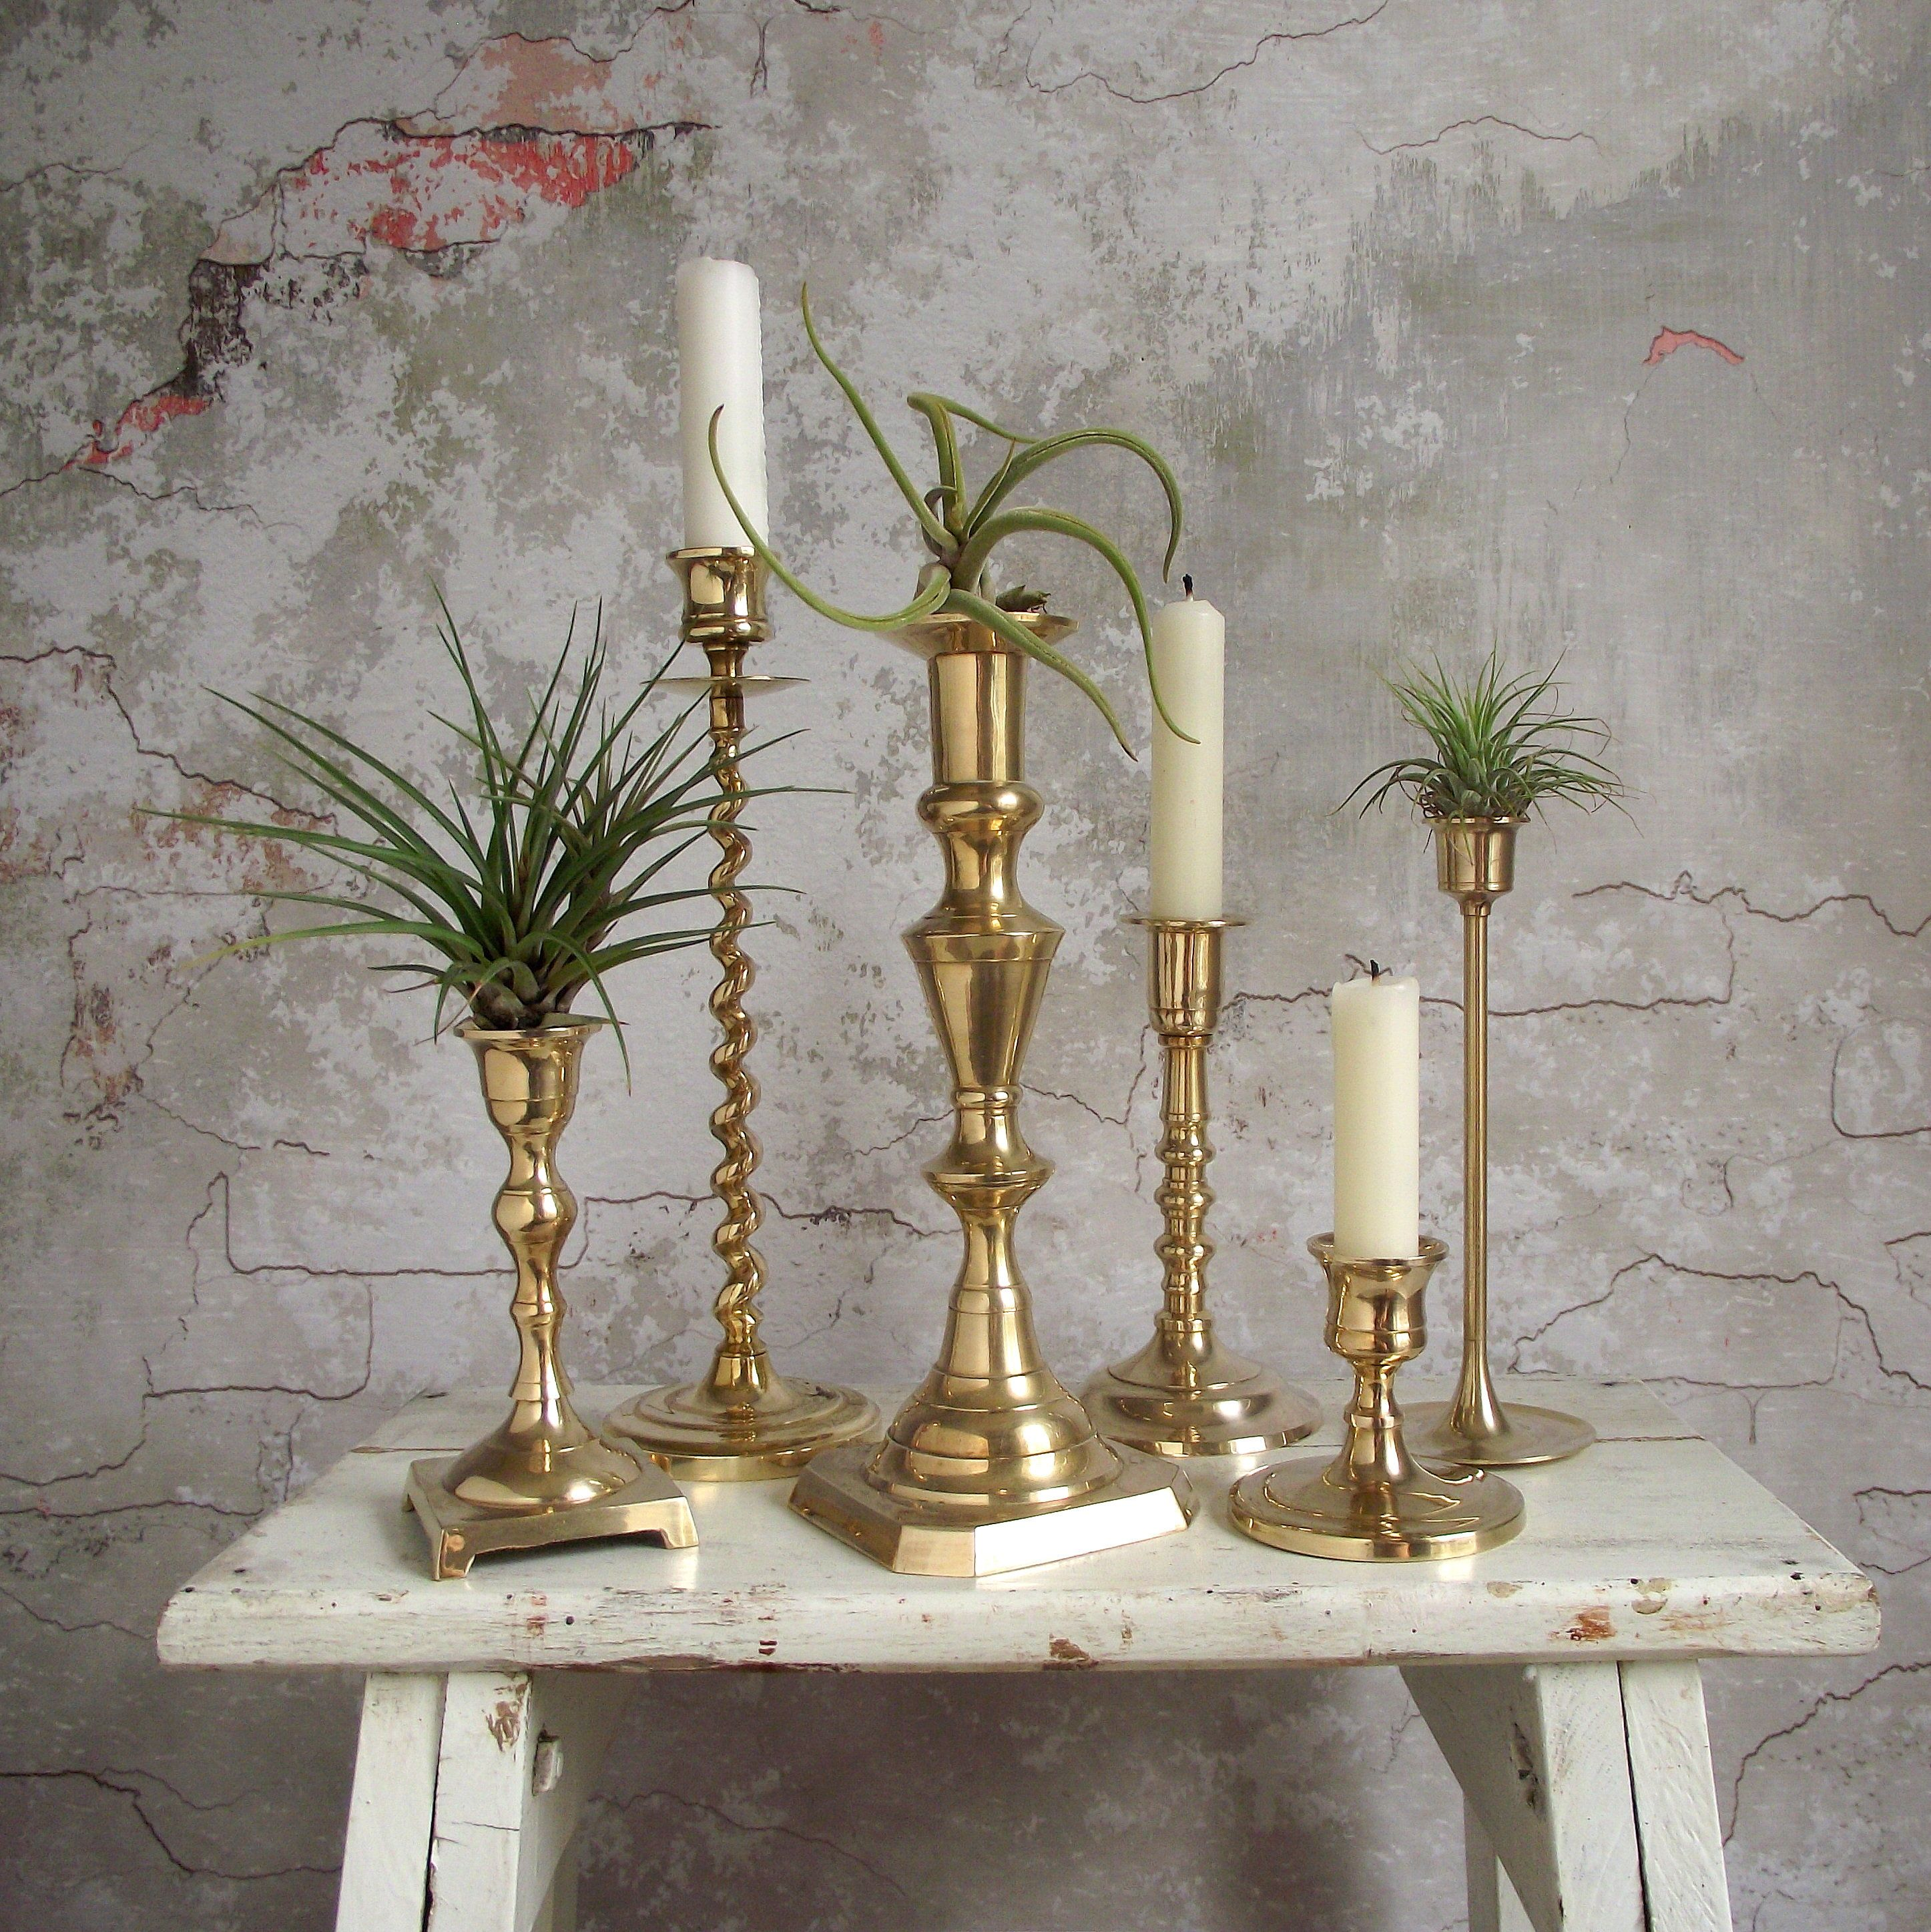 Boho Chic Brass Candlestick Holders Six Mixed Graduated Brass Candleholders For Vintage Mantel Table Or Wedding Decor Candle Stick Decor Brass Candlesticks Brass Decor